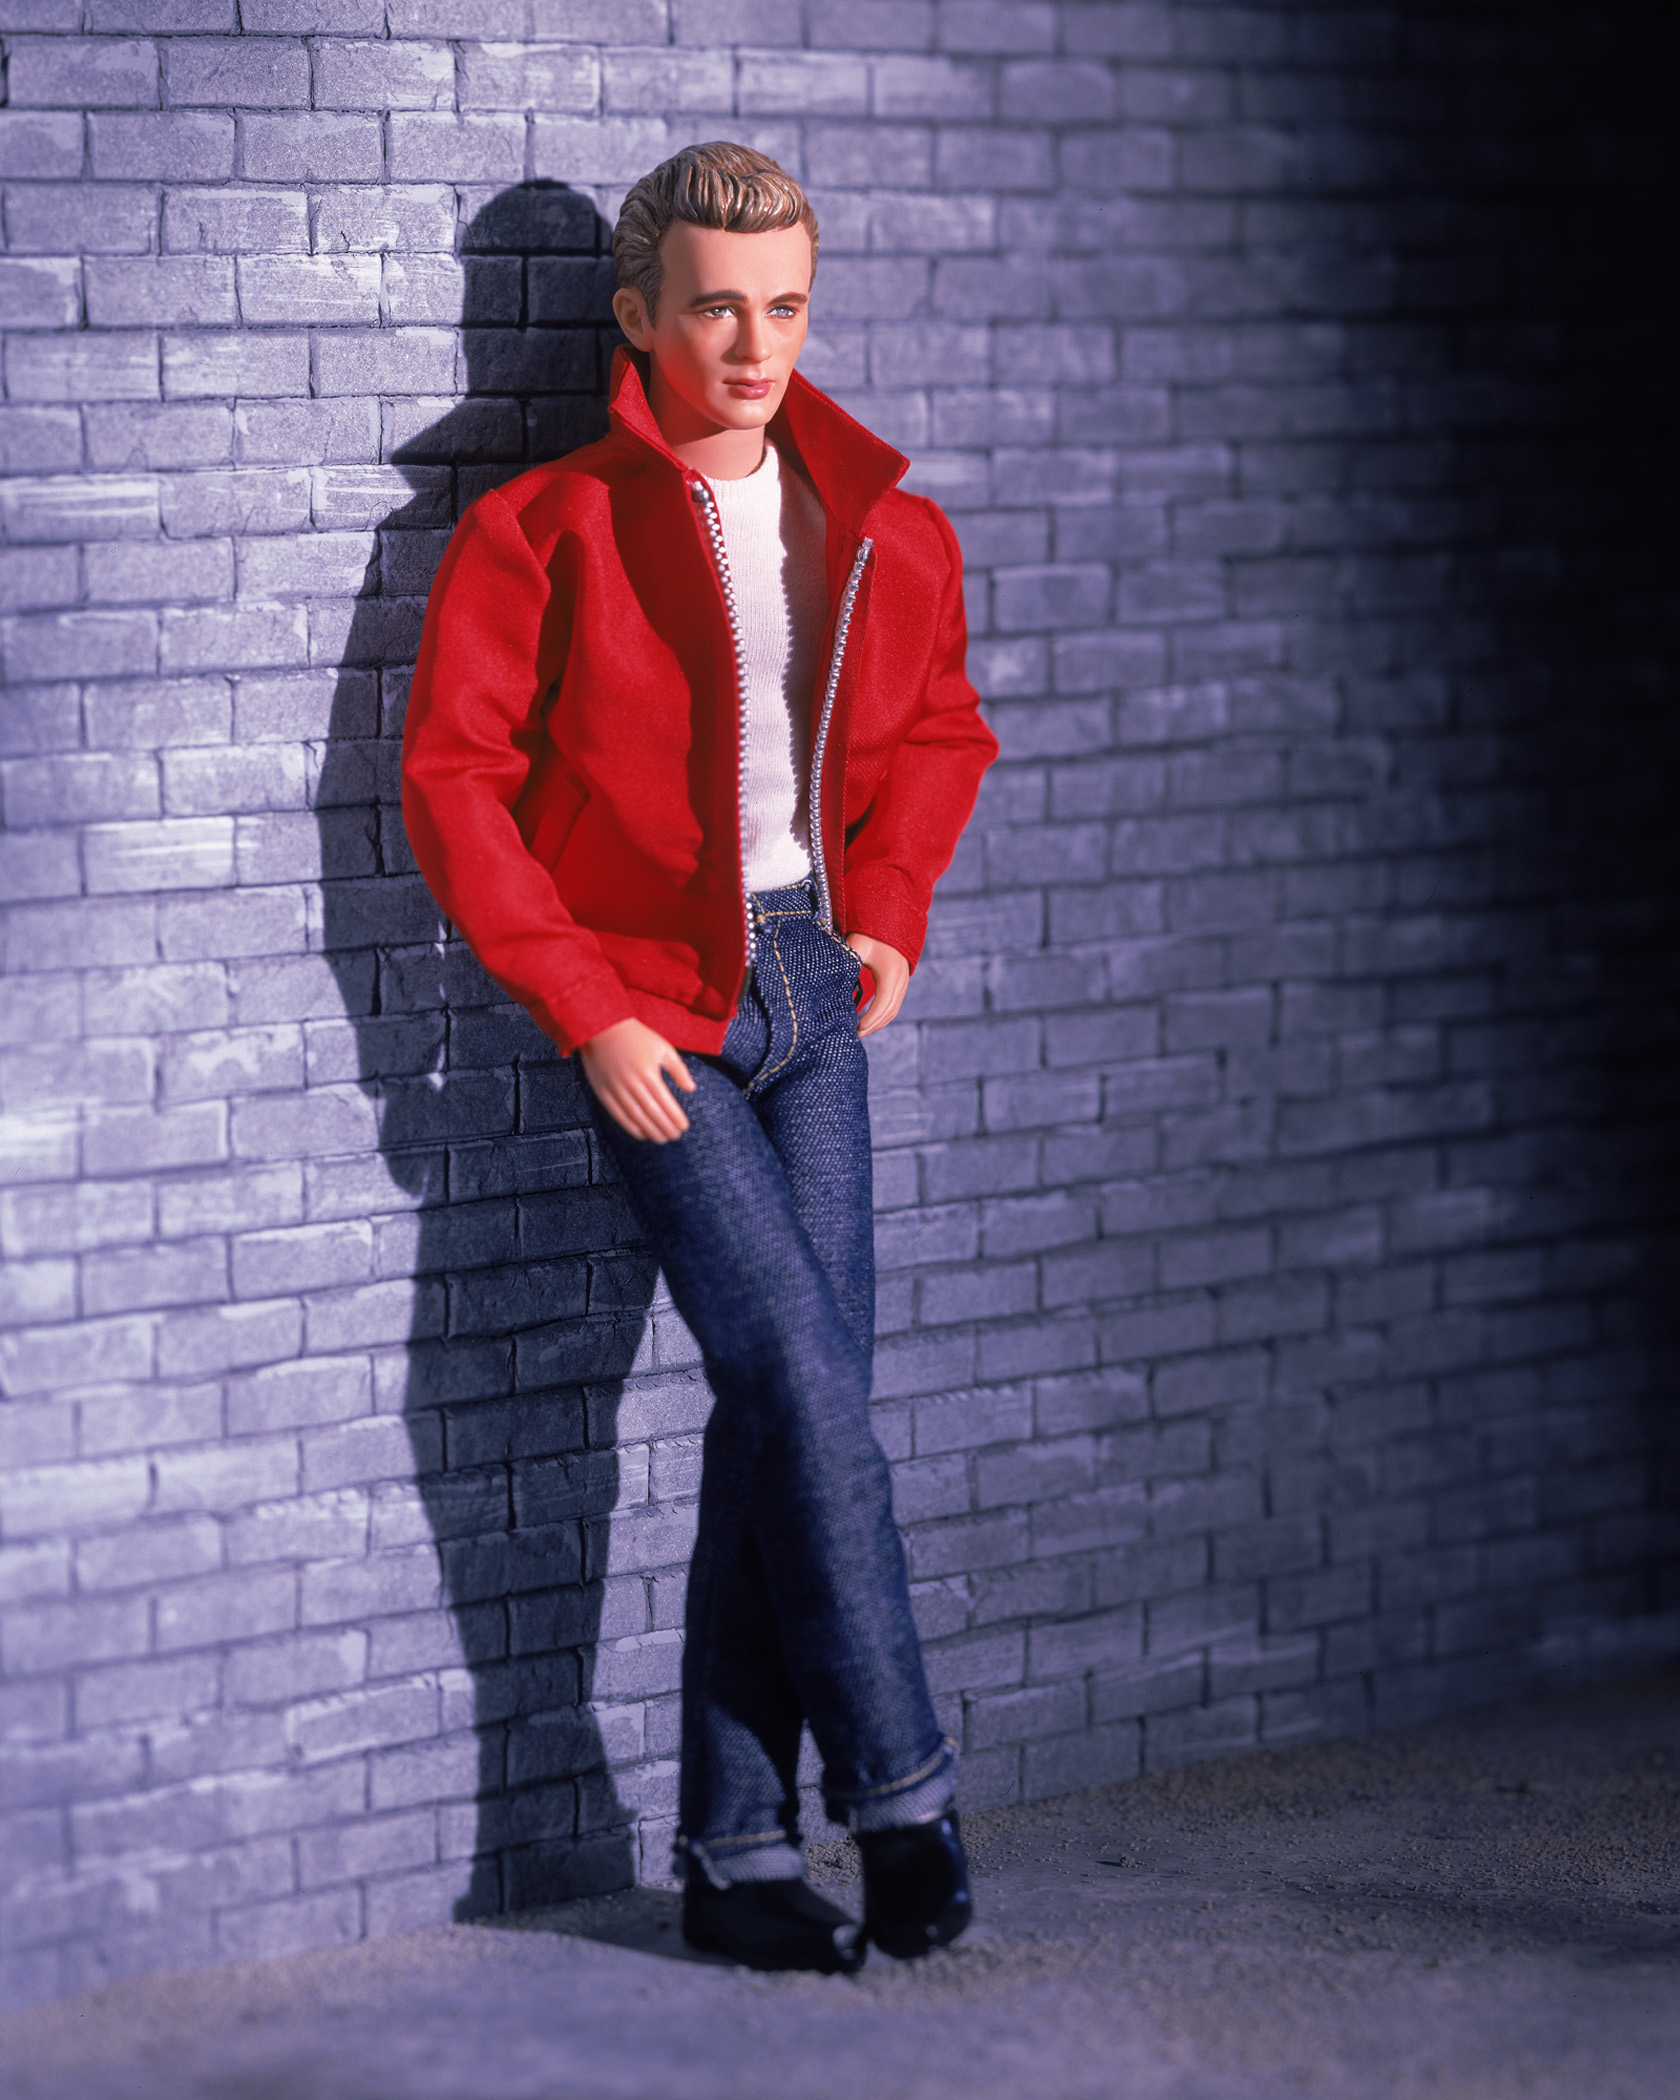 The James Dean Barbie, released in 2001.